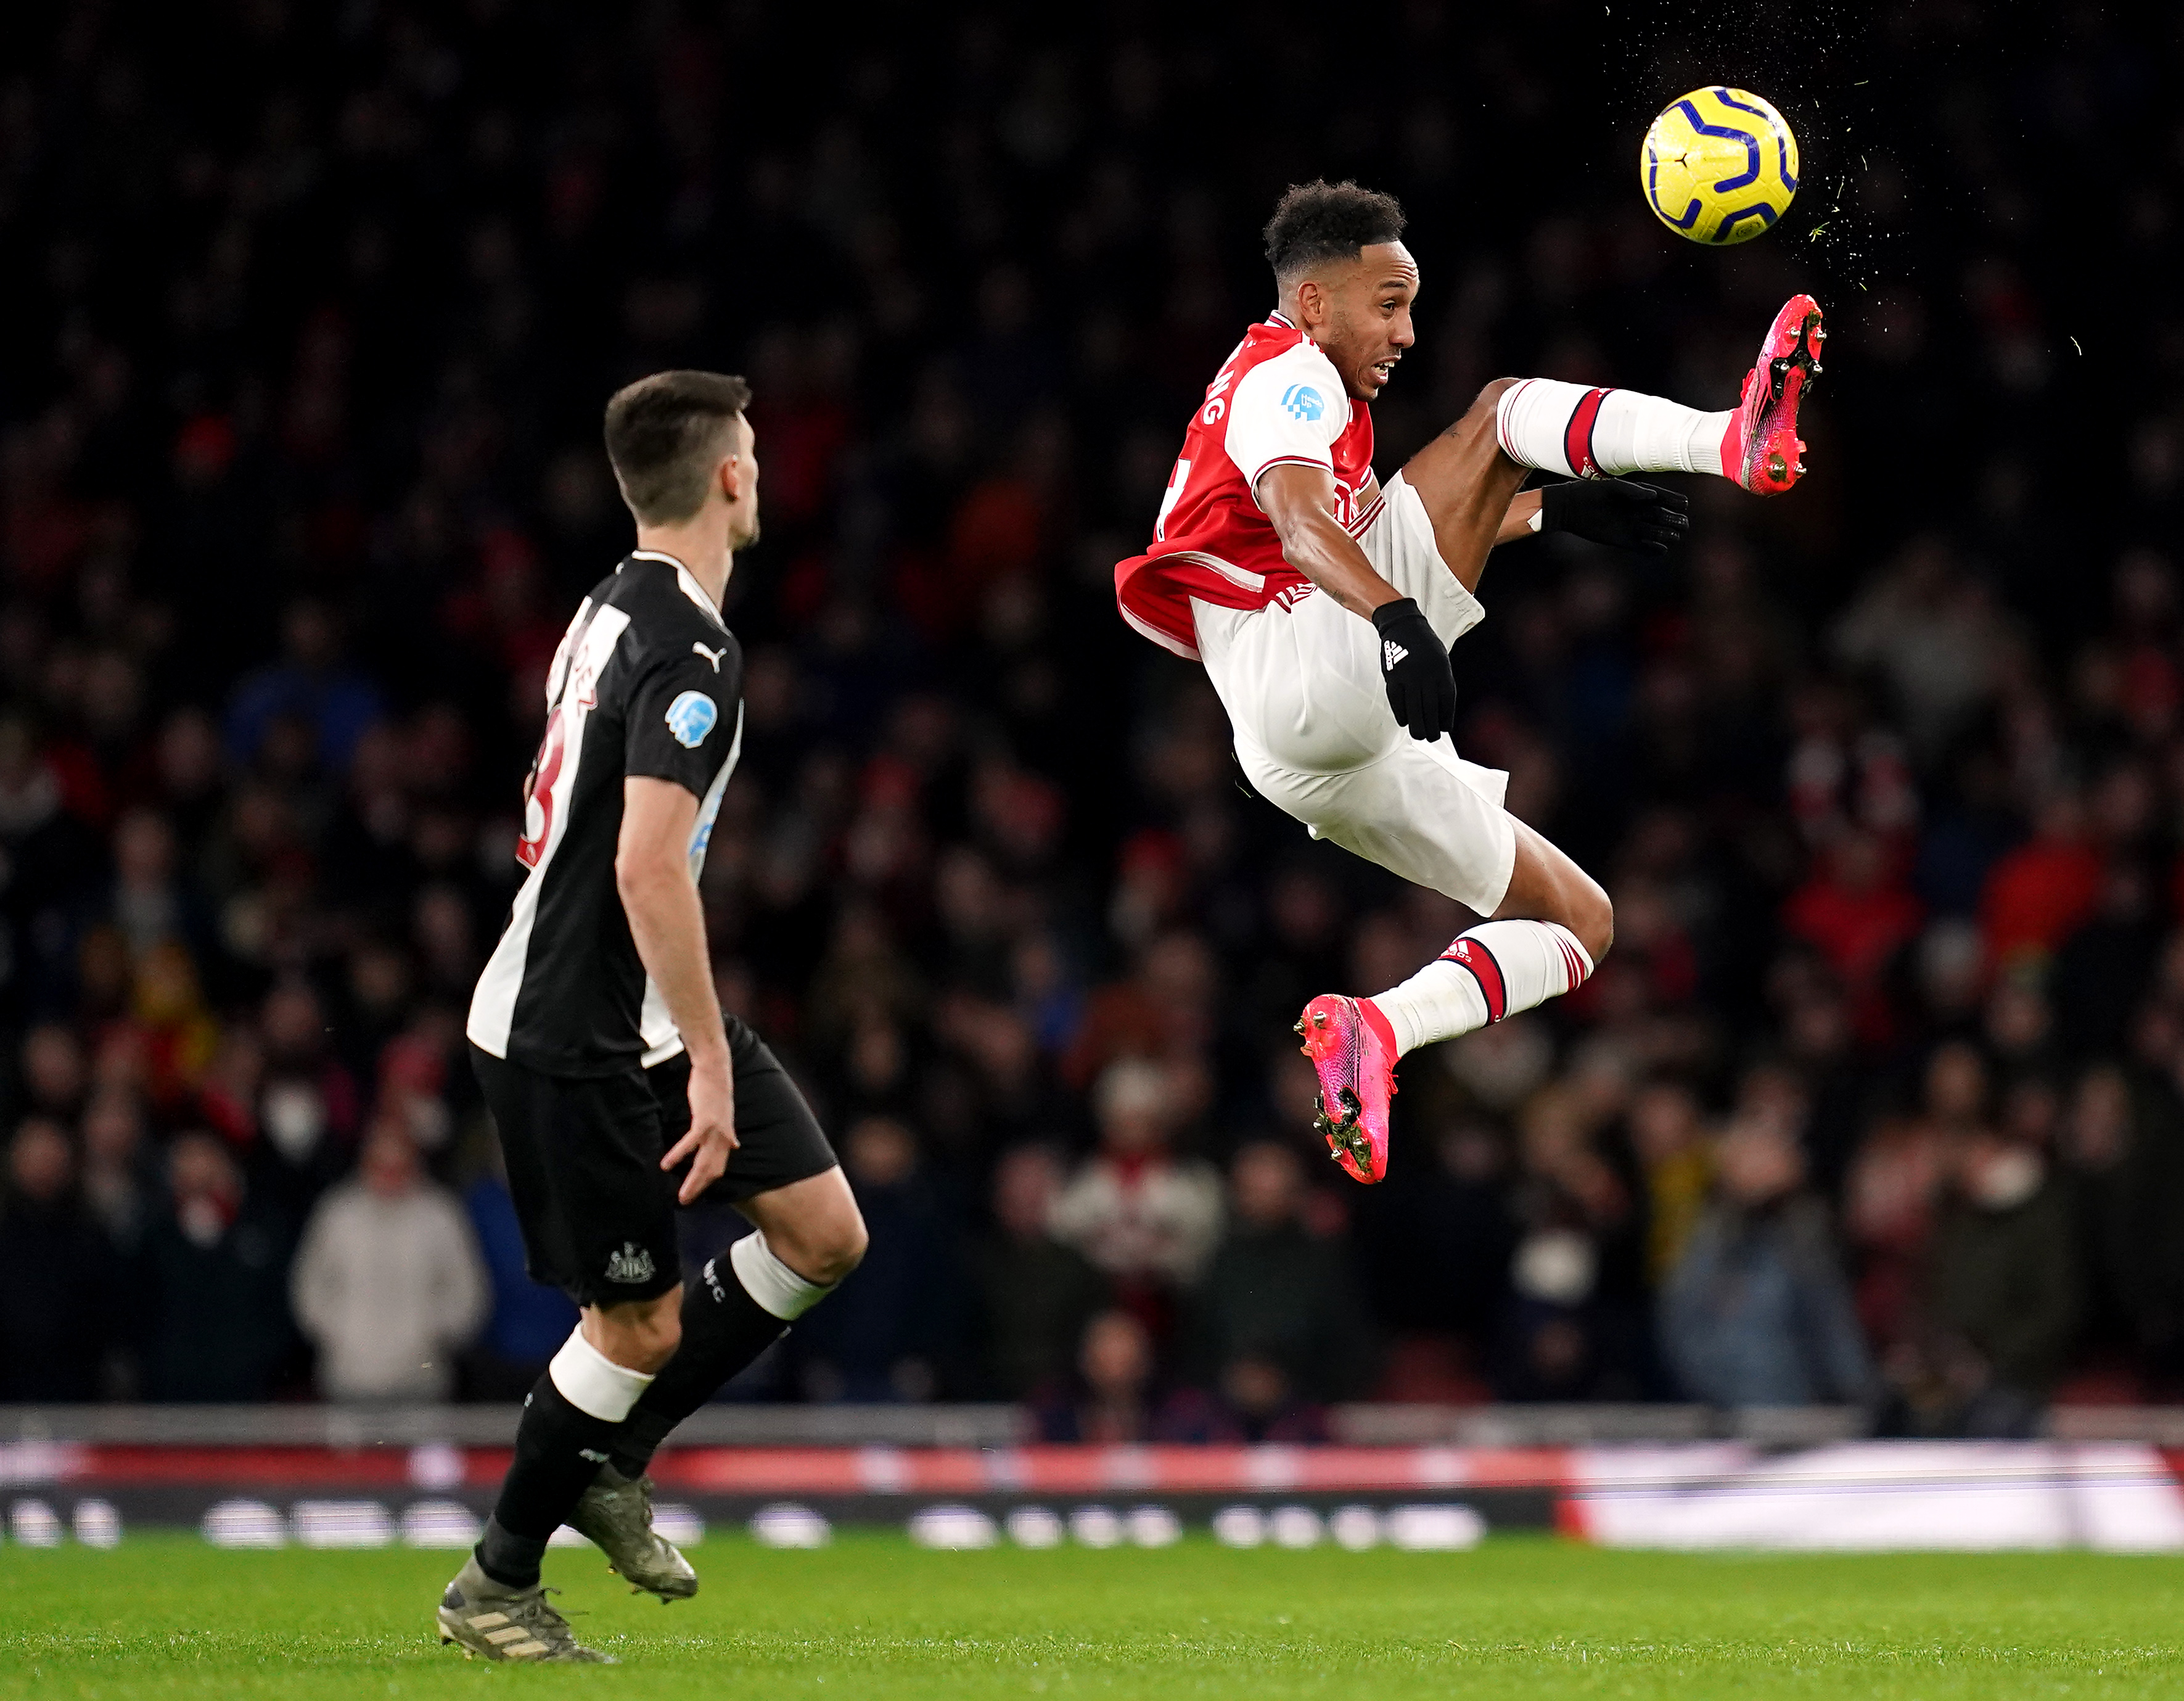 Arsenal 4-0 Newcastle: Lacazette on the score sheet in easy win for the Gunners